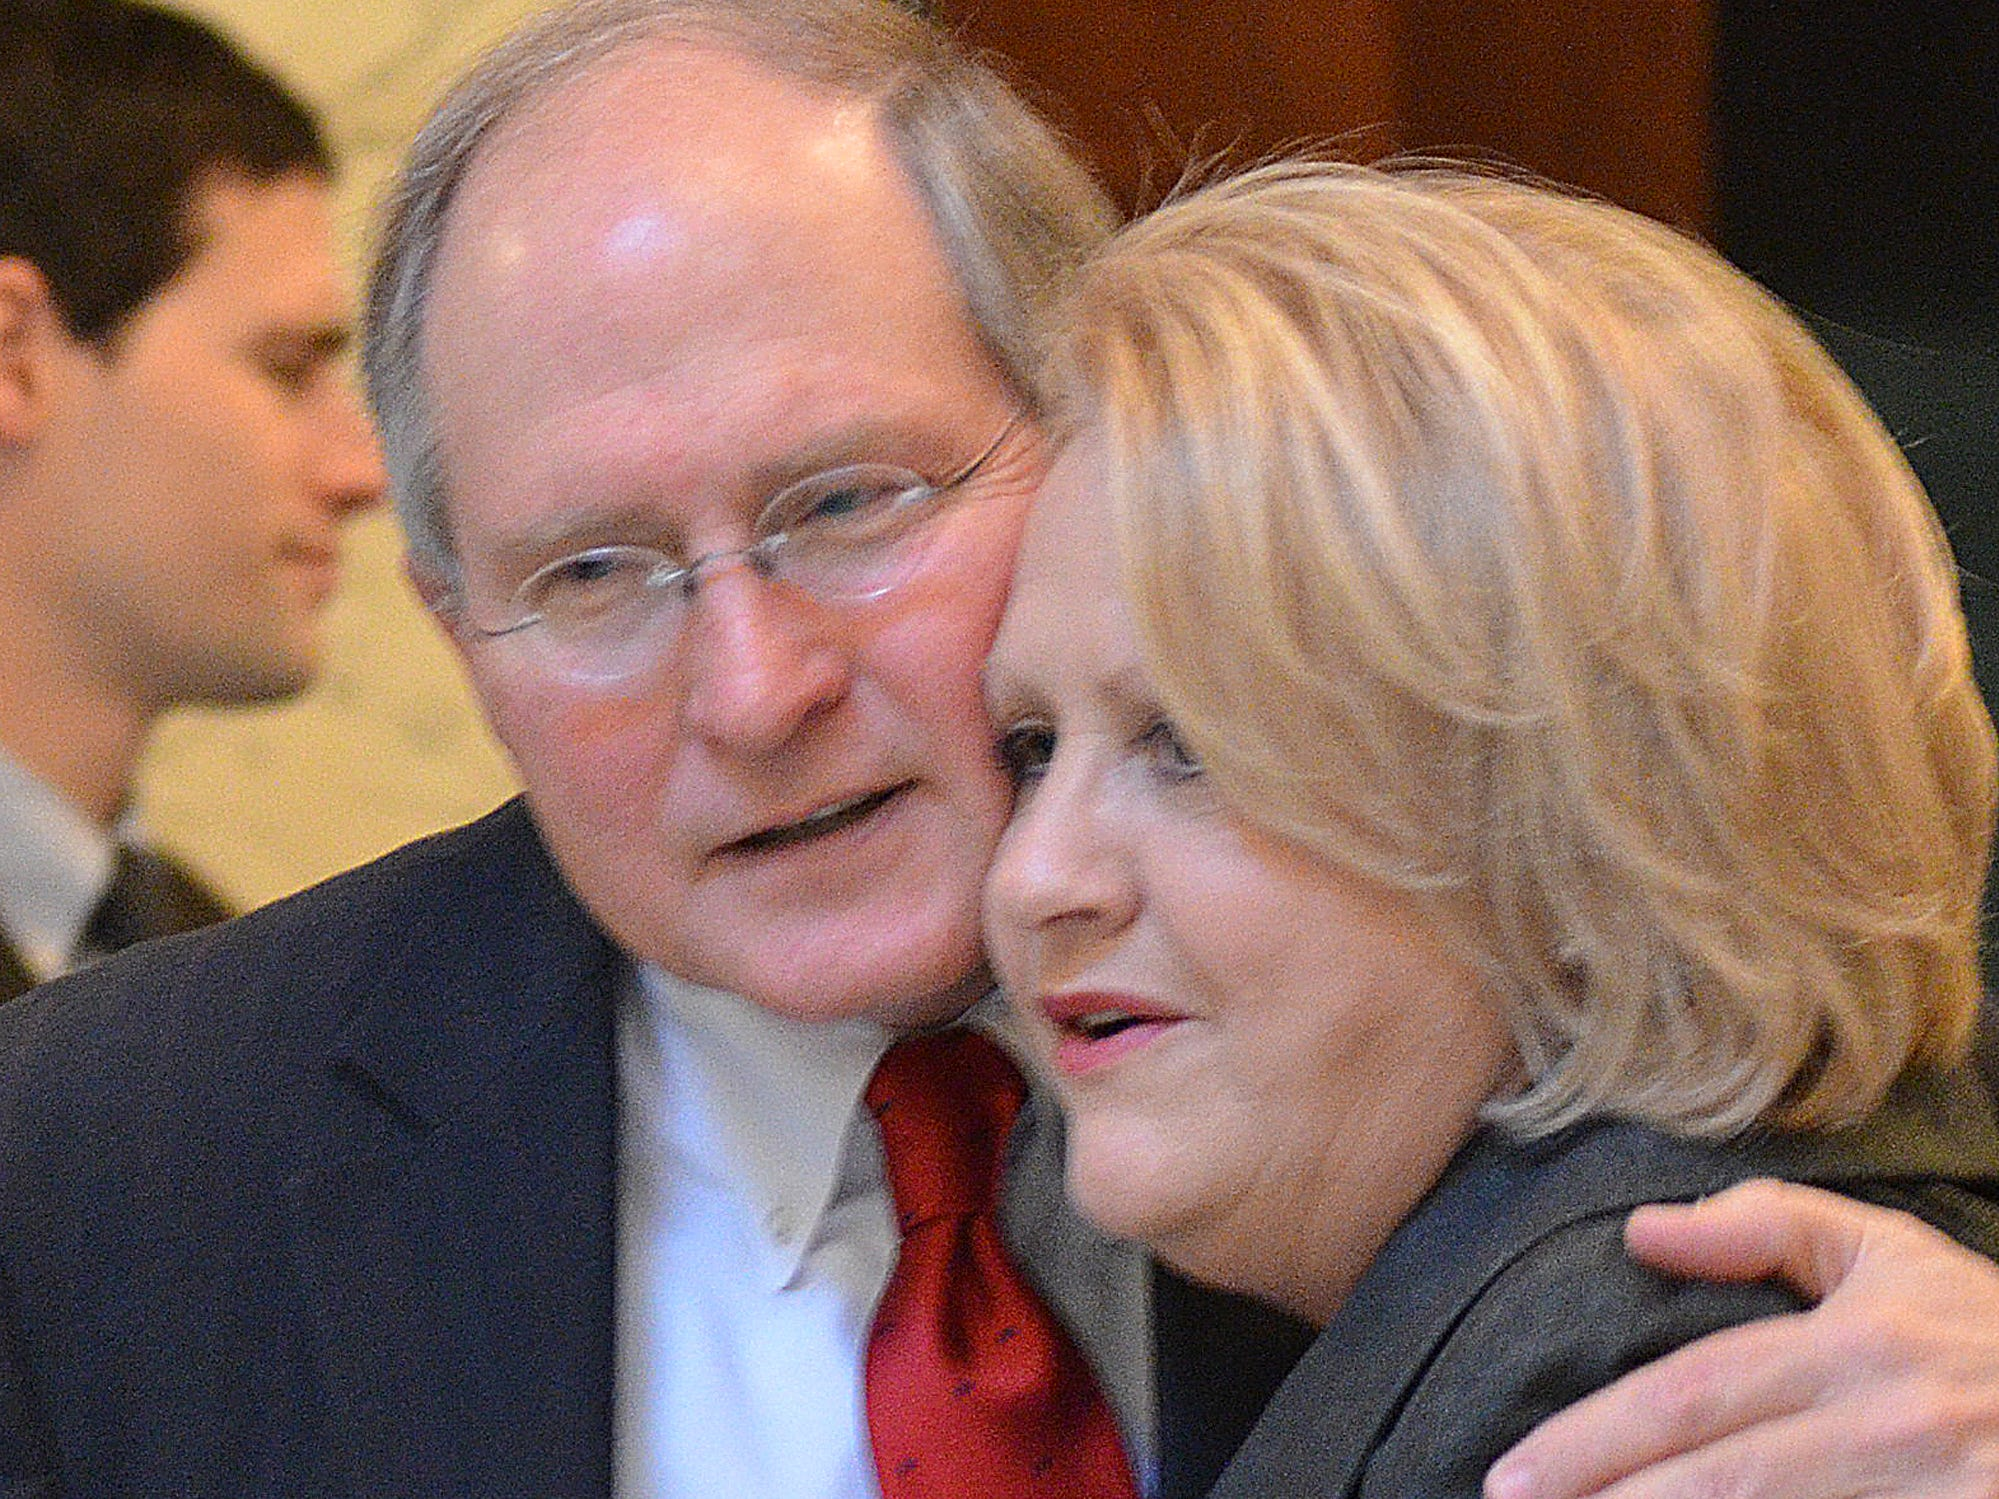 Bill Waller Jr. and his first cousin Susan Waller Vaughn give each other a hug in the Capitol Rotunda where his father Gov. Bill Waller lies in state.